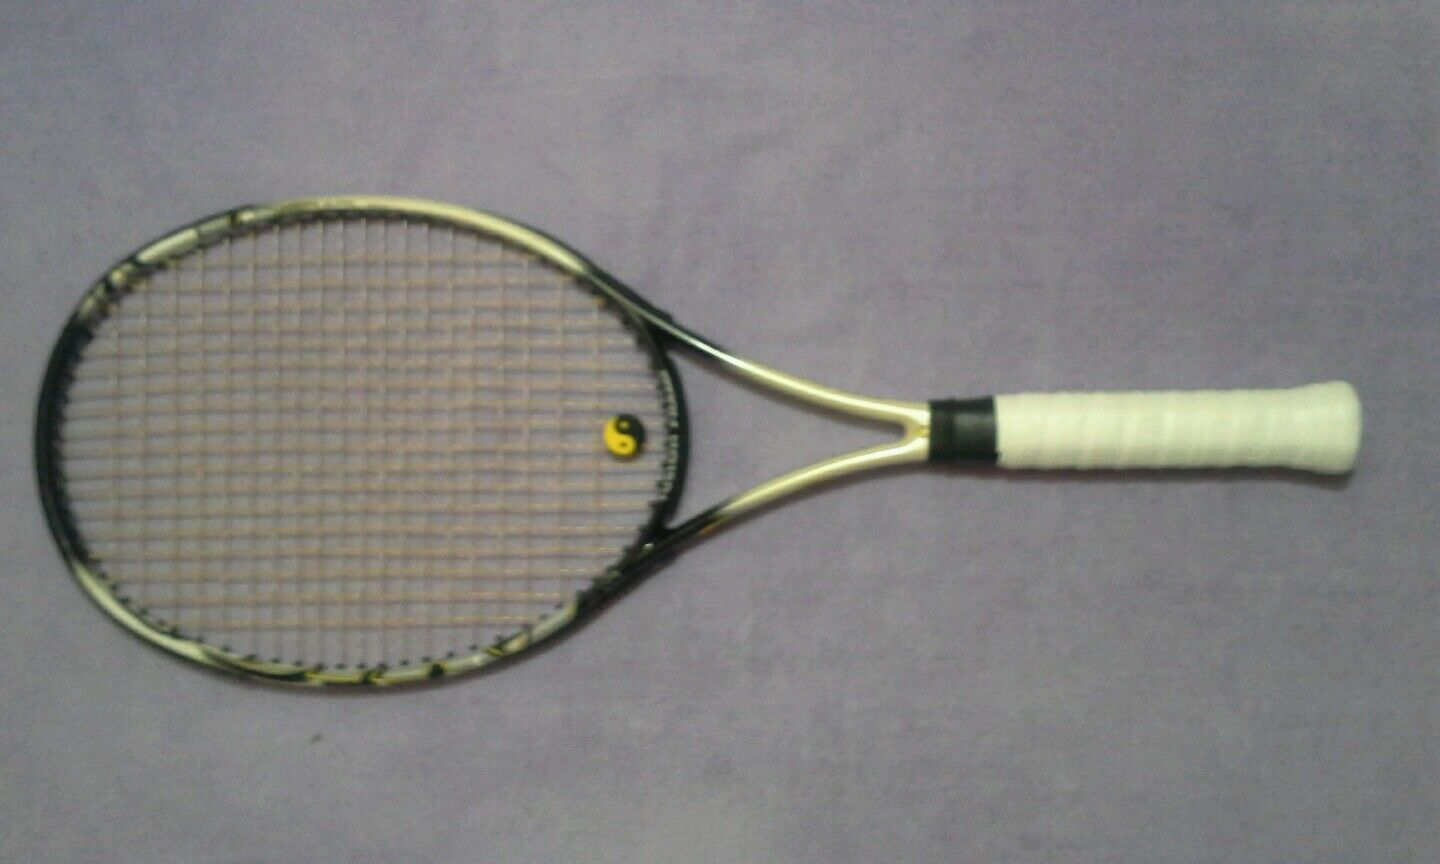 A Volkl C-8 Classic Pro Midplus in Nice Condition (4 3 8's L 3)